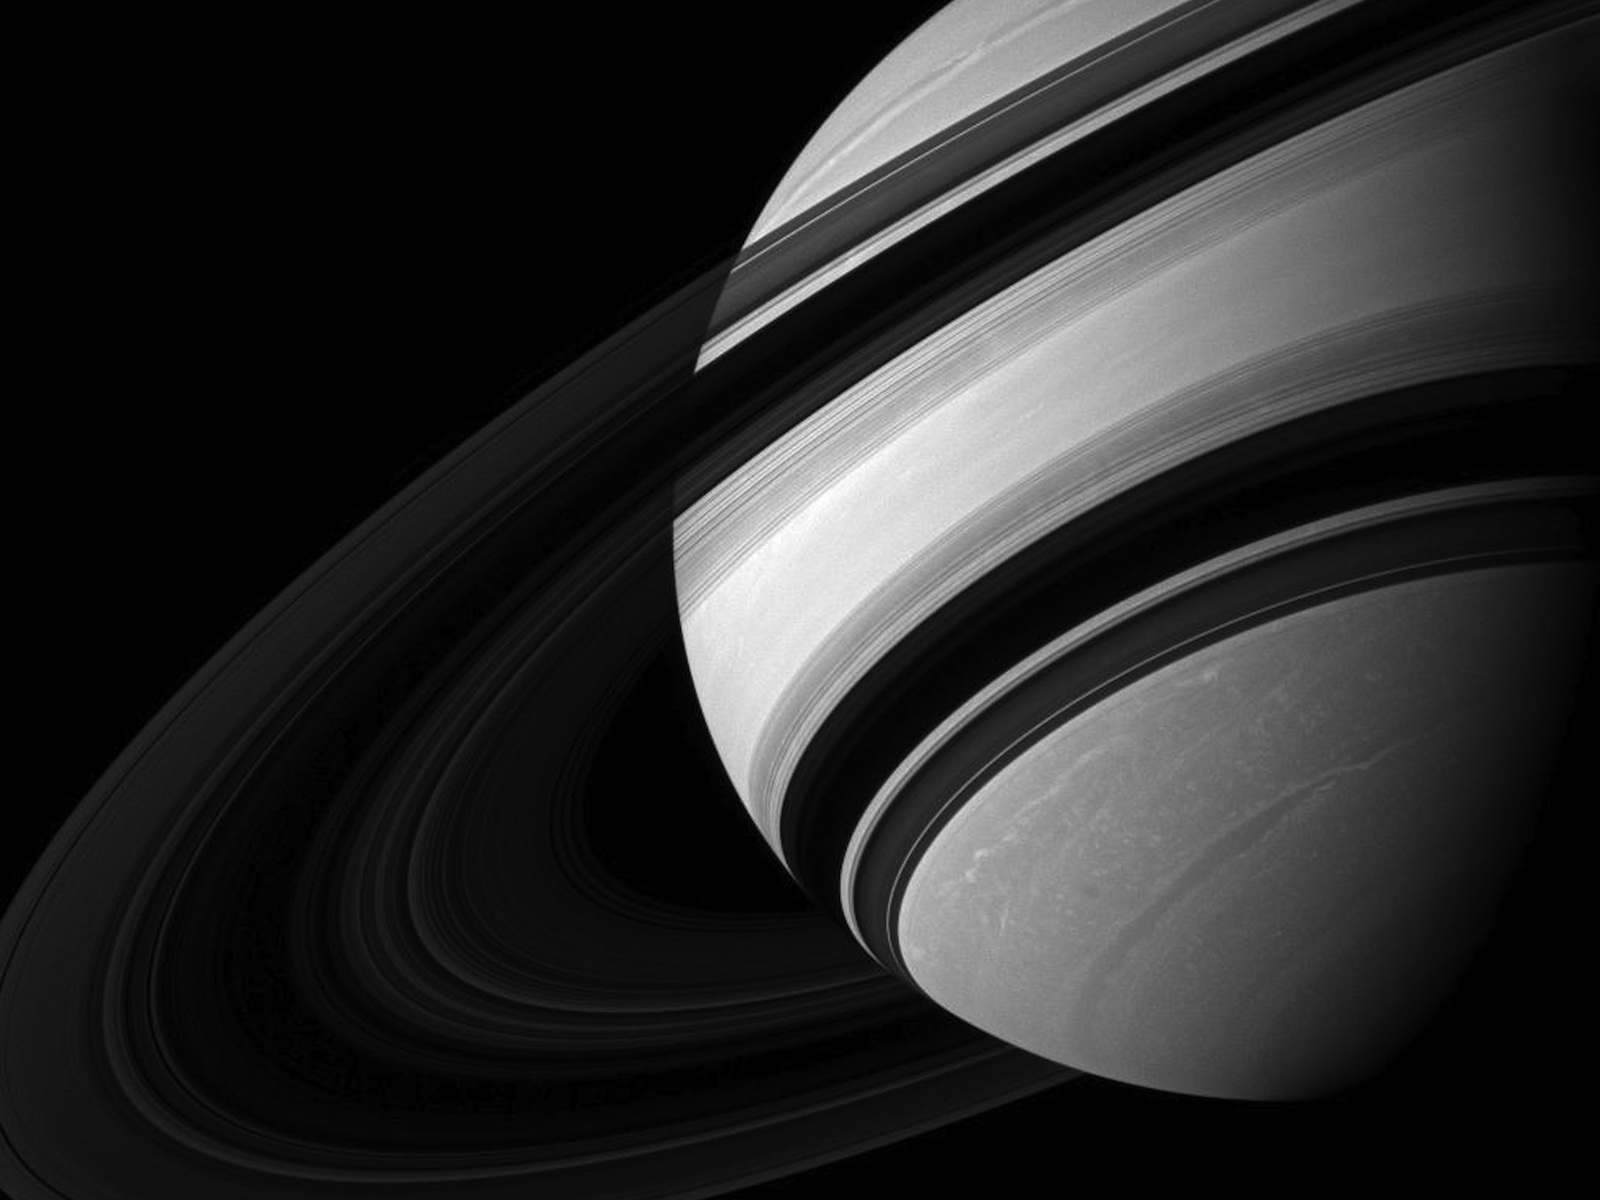 Dwarfed by Saturn